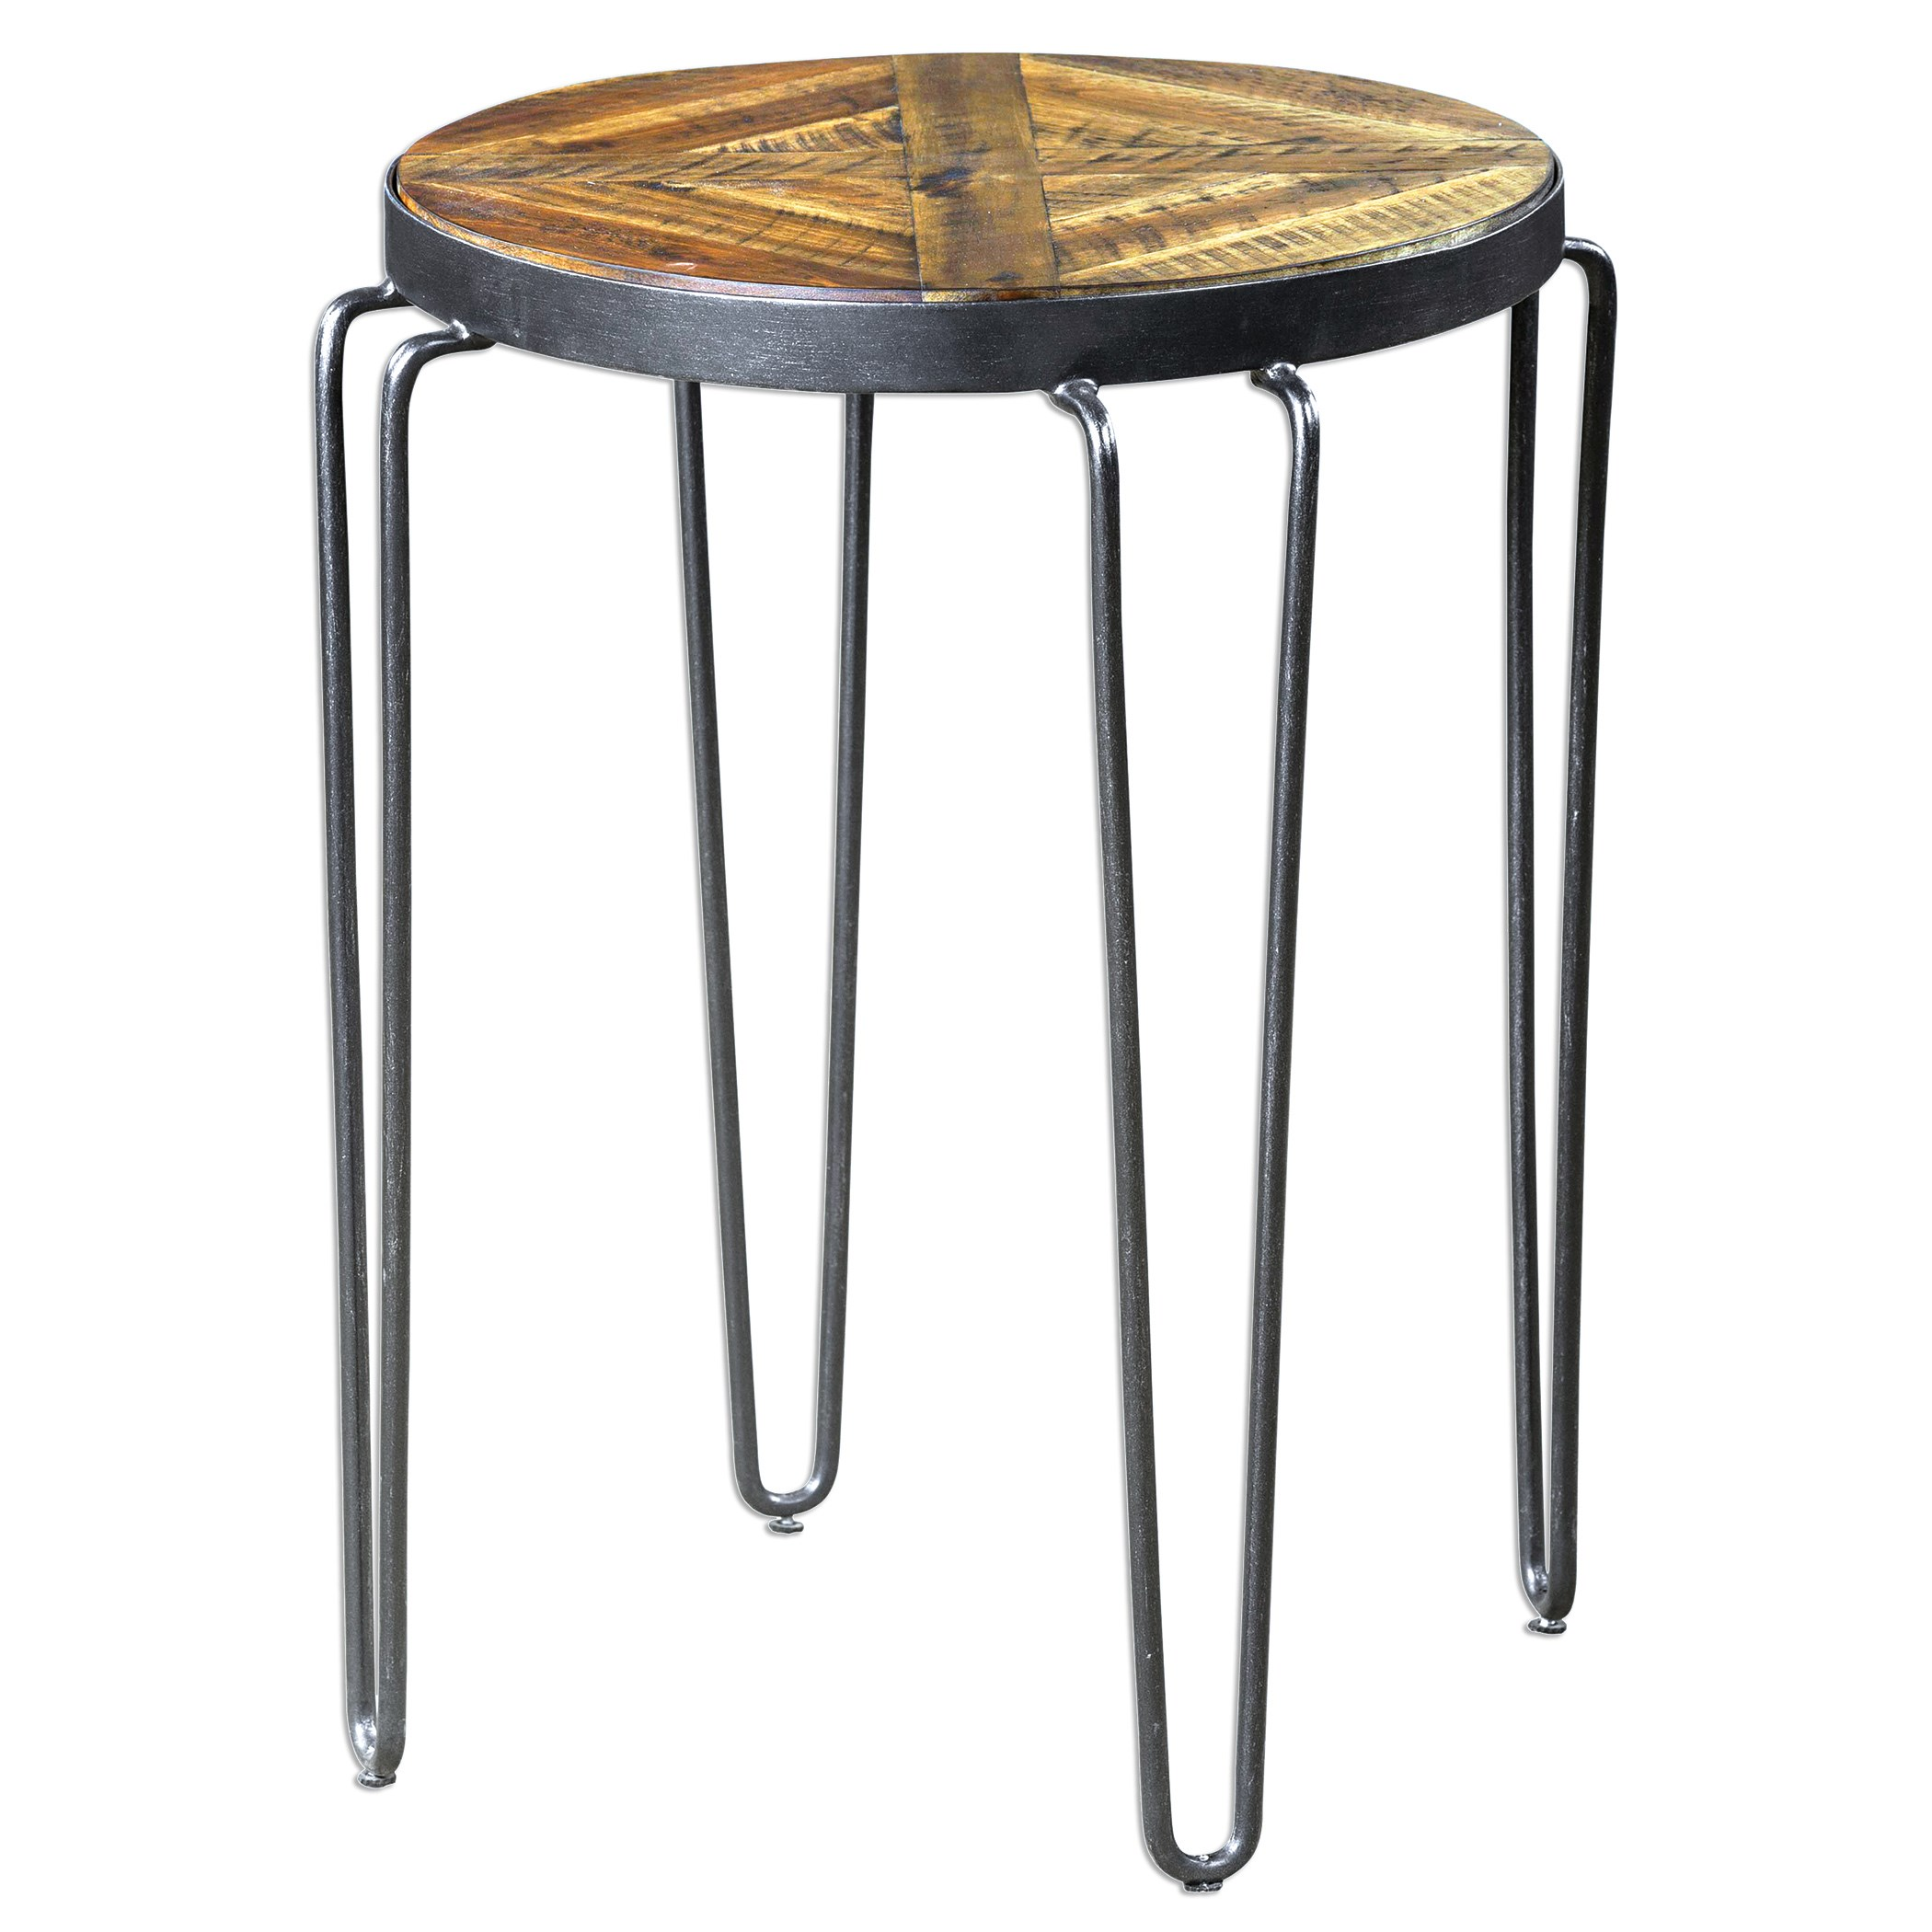 uttermost accent furniture stelios round accent table uttermost accent furniture 25907 stelios round accent table   best      rh   besthfstl